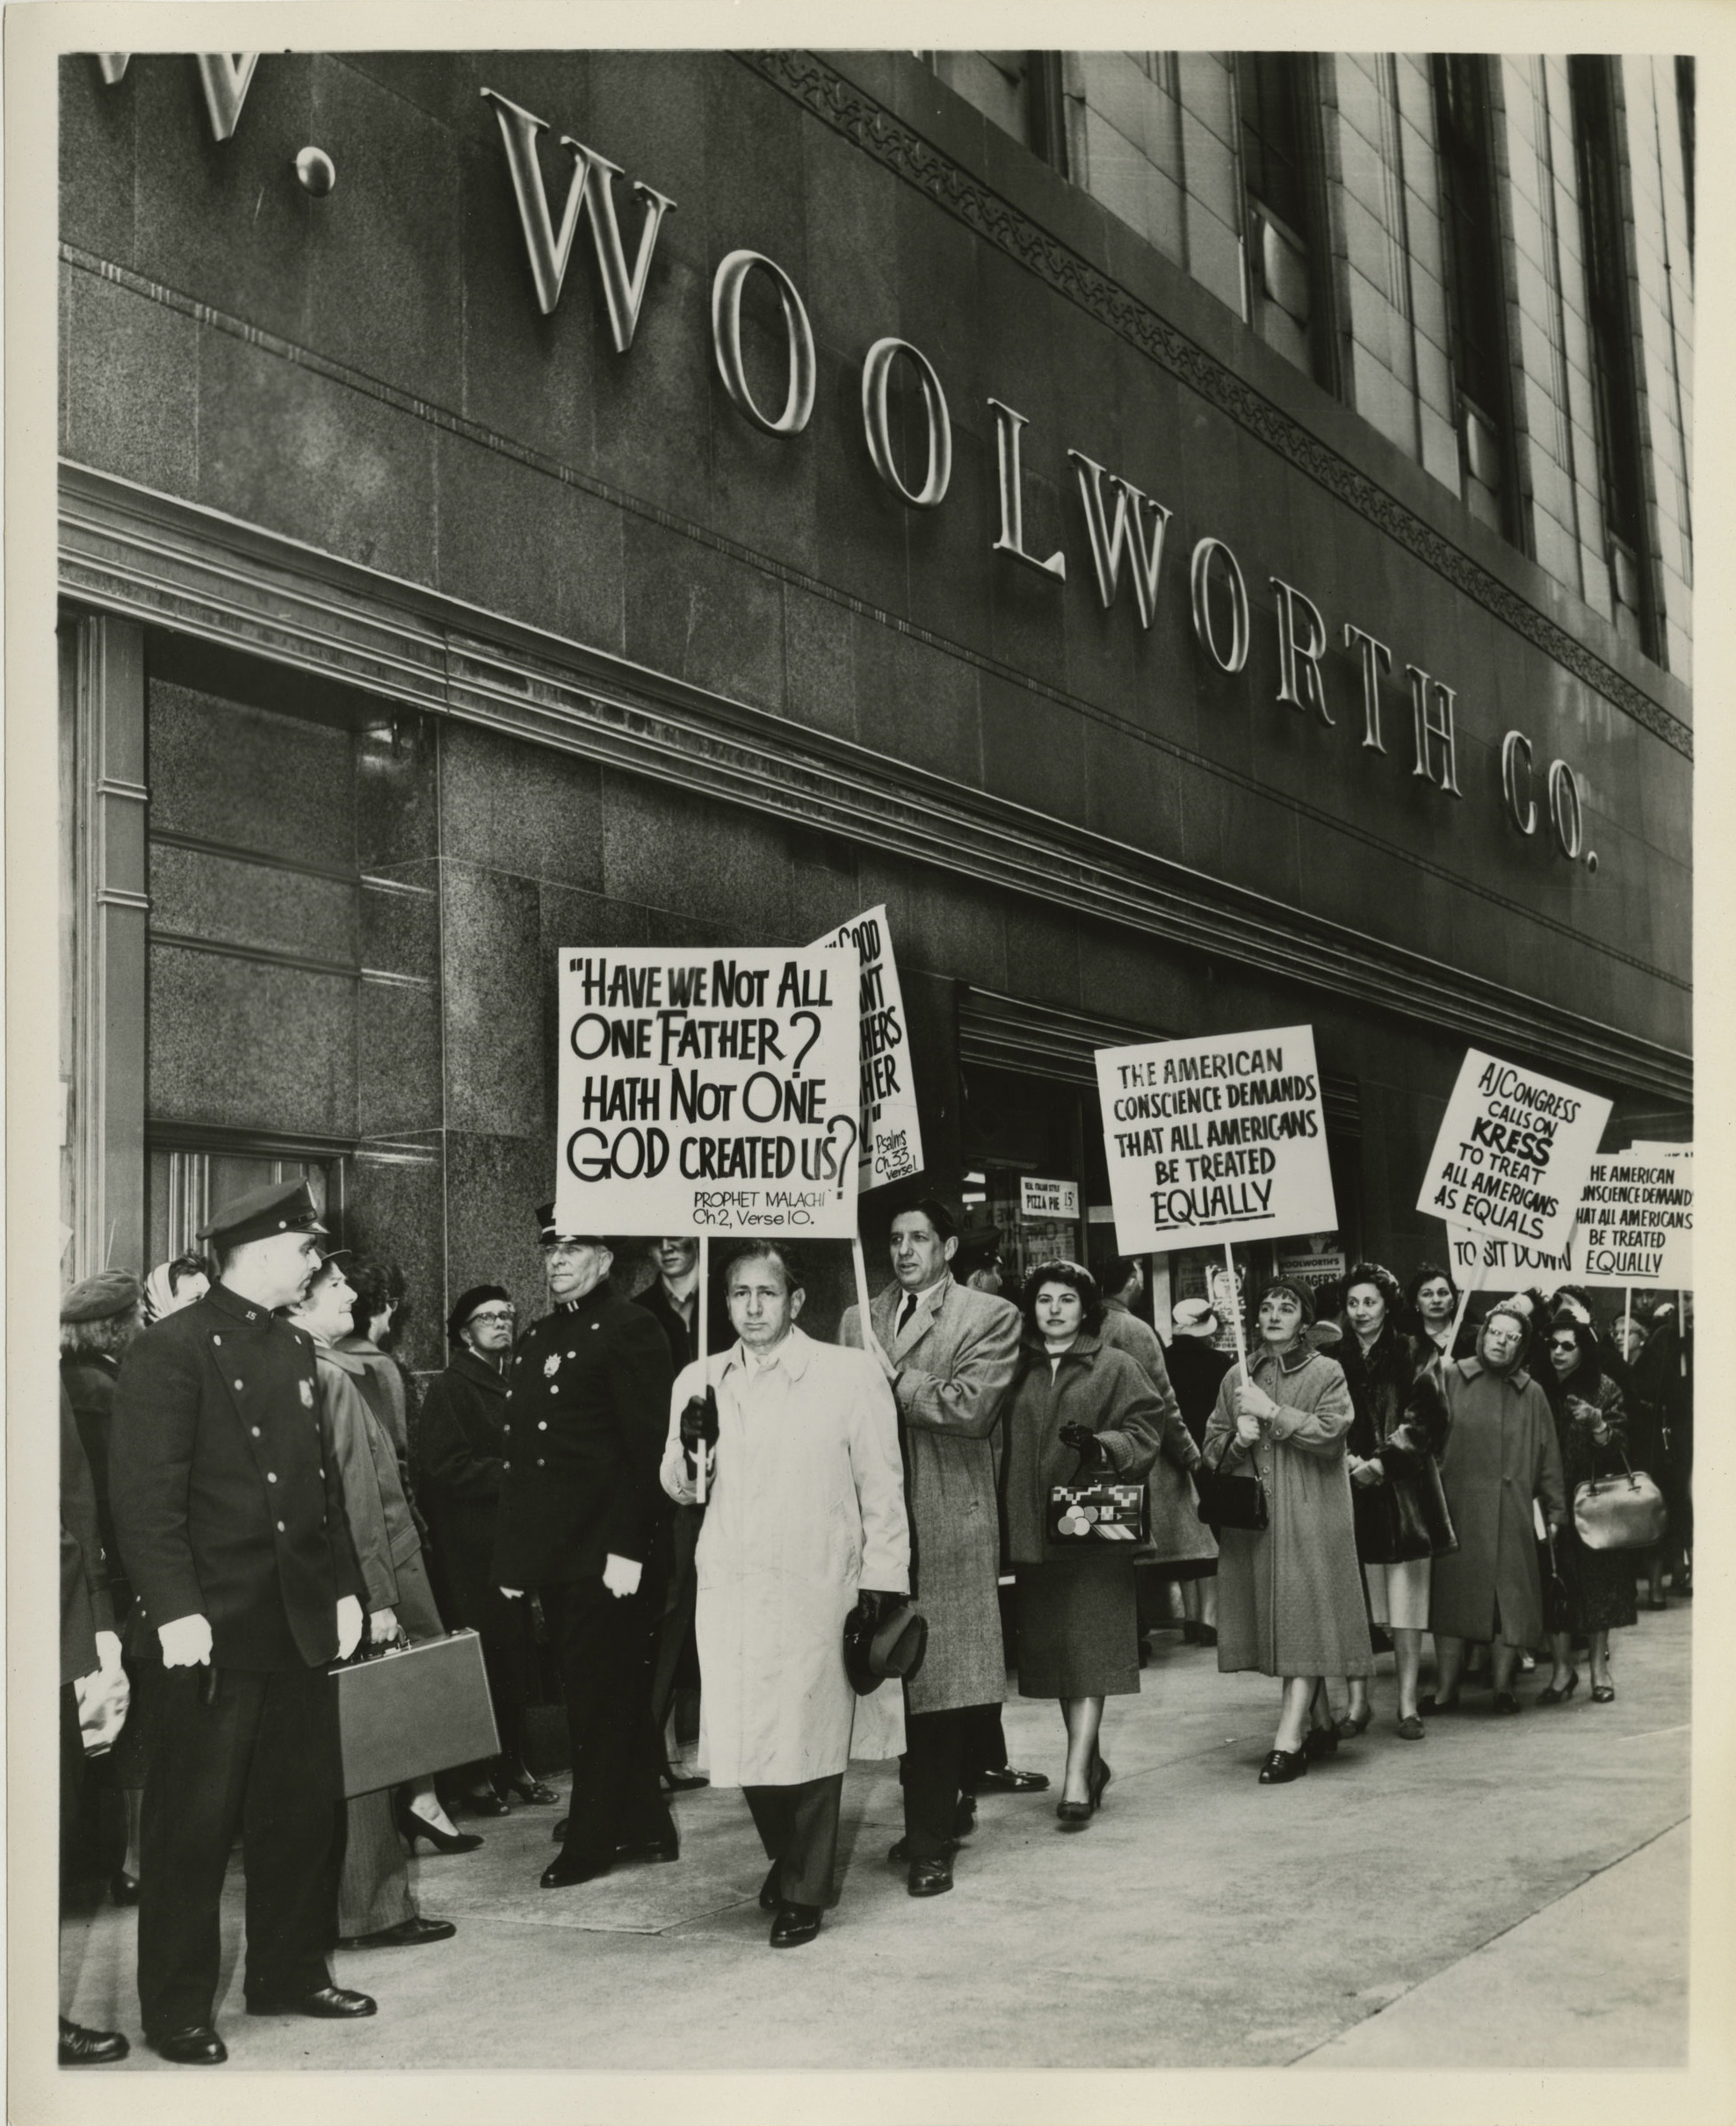 woolworth's-photo-cropped.jpg